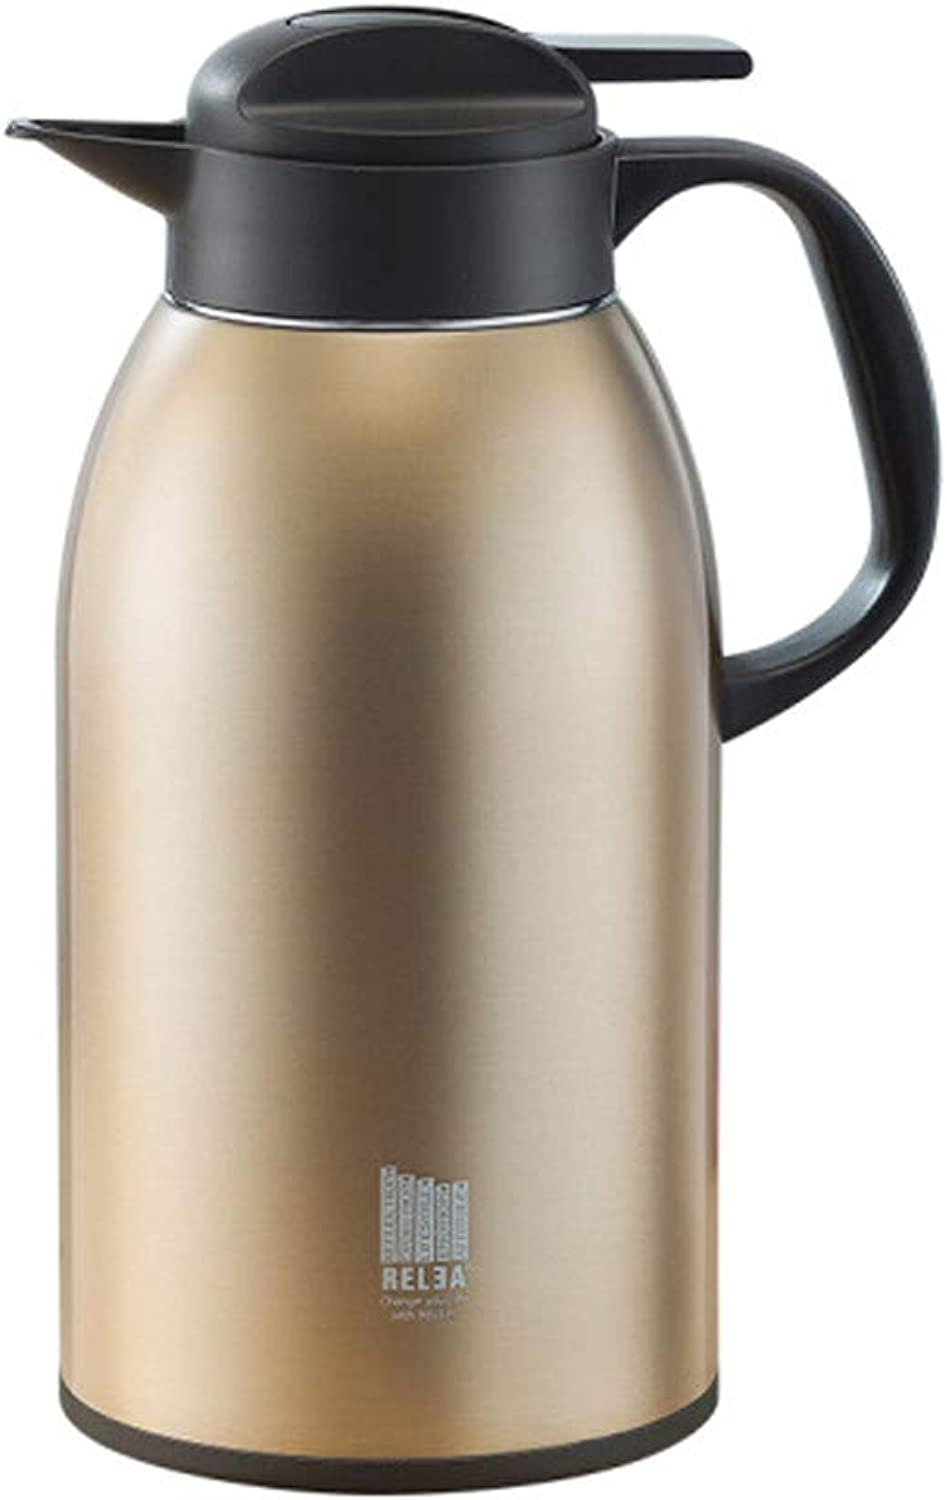 Hengxiang 2.5L Large Capacity Stainless Steel Household Coffee Carafe Thermos Travel Termoses